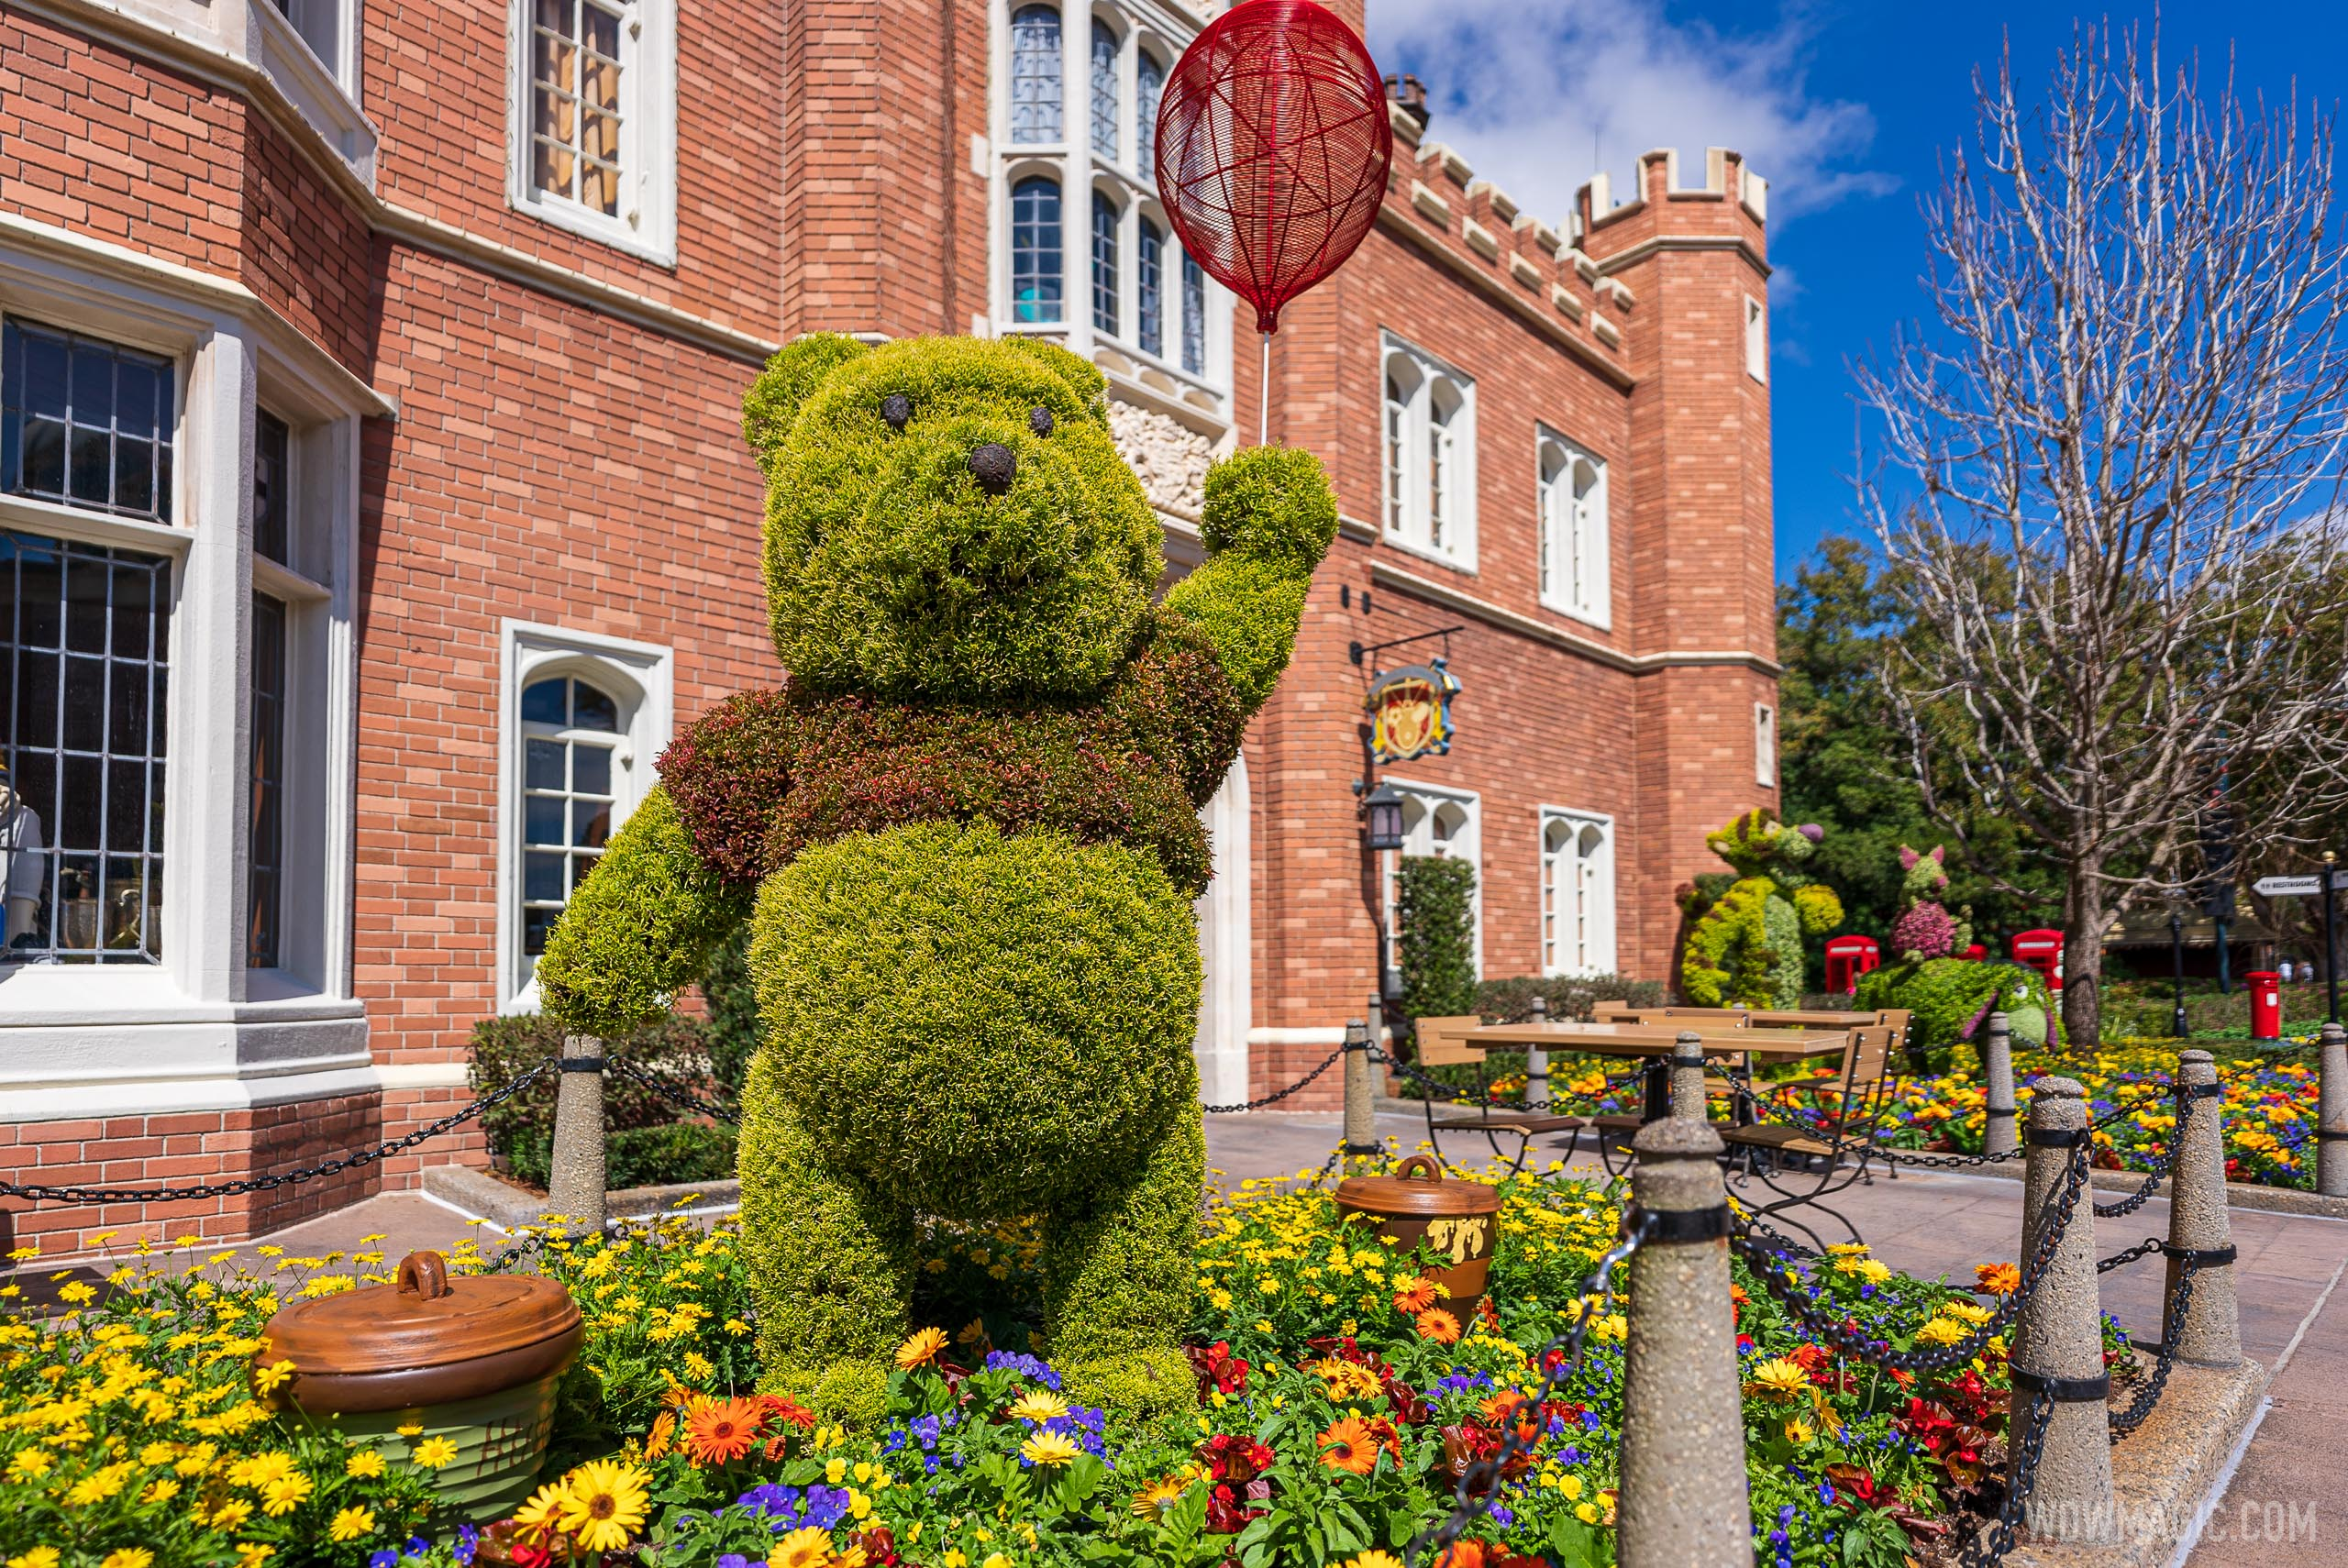 Winnie the Pooh and Friends (Rabbit, Eeyore, Piglet and Tigger) – United Kingdom Pavilion